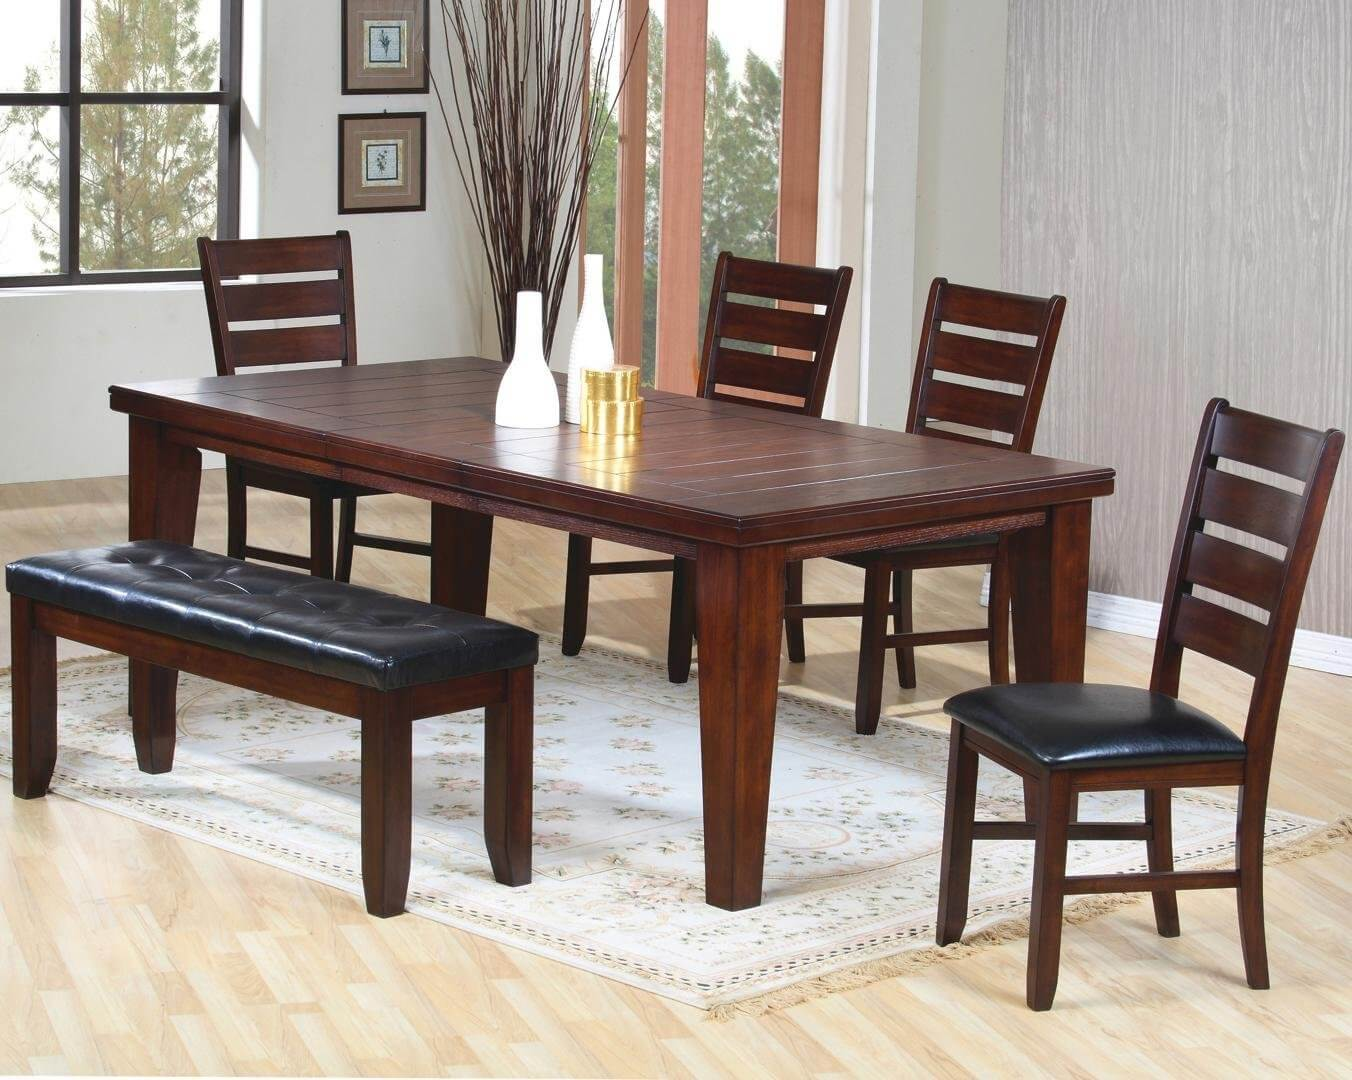 Incroyable Solid Wood Six Piece Dining Set With Cushioned Bench. The Finish Is Dark  Oak Wood